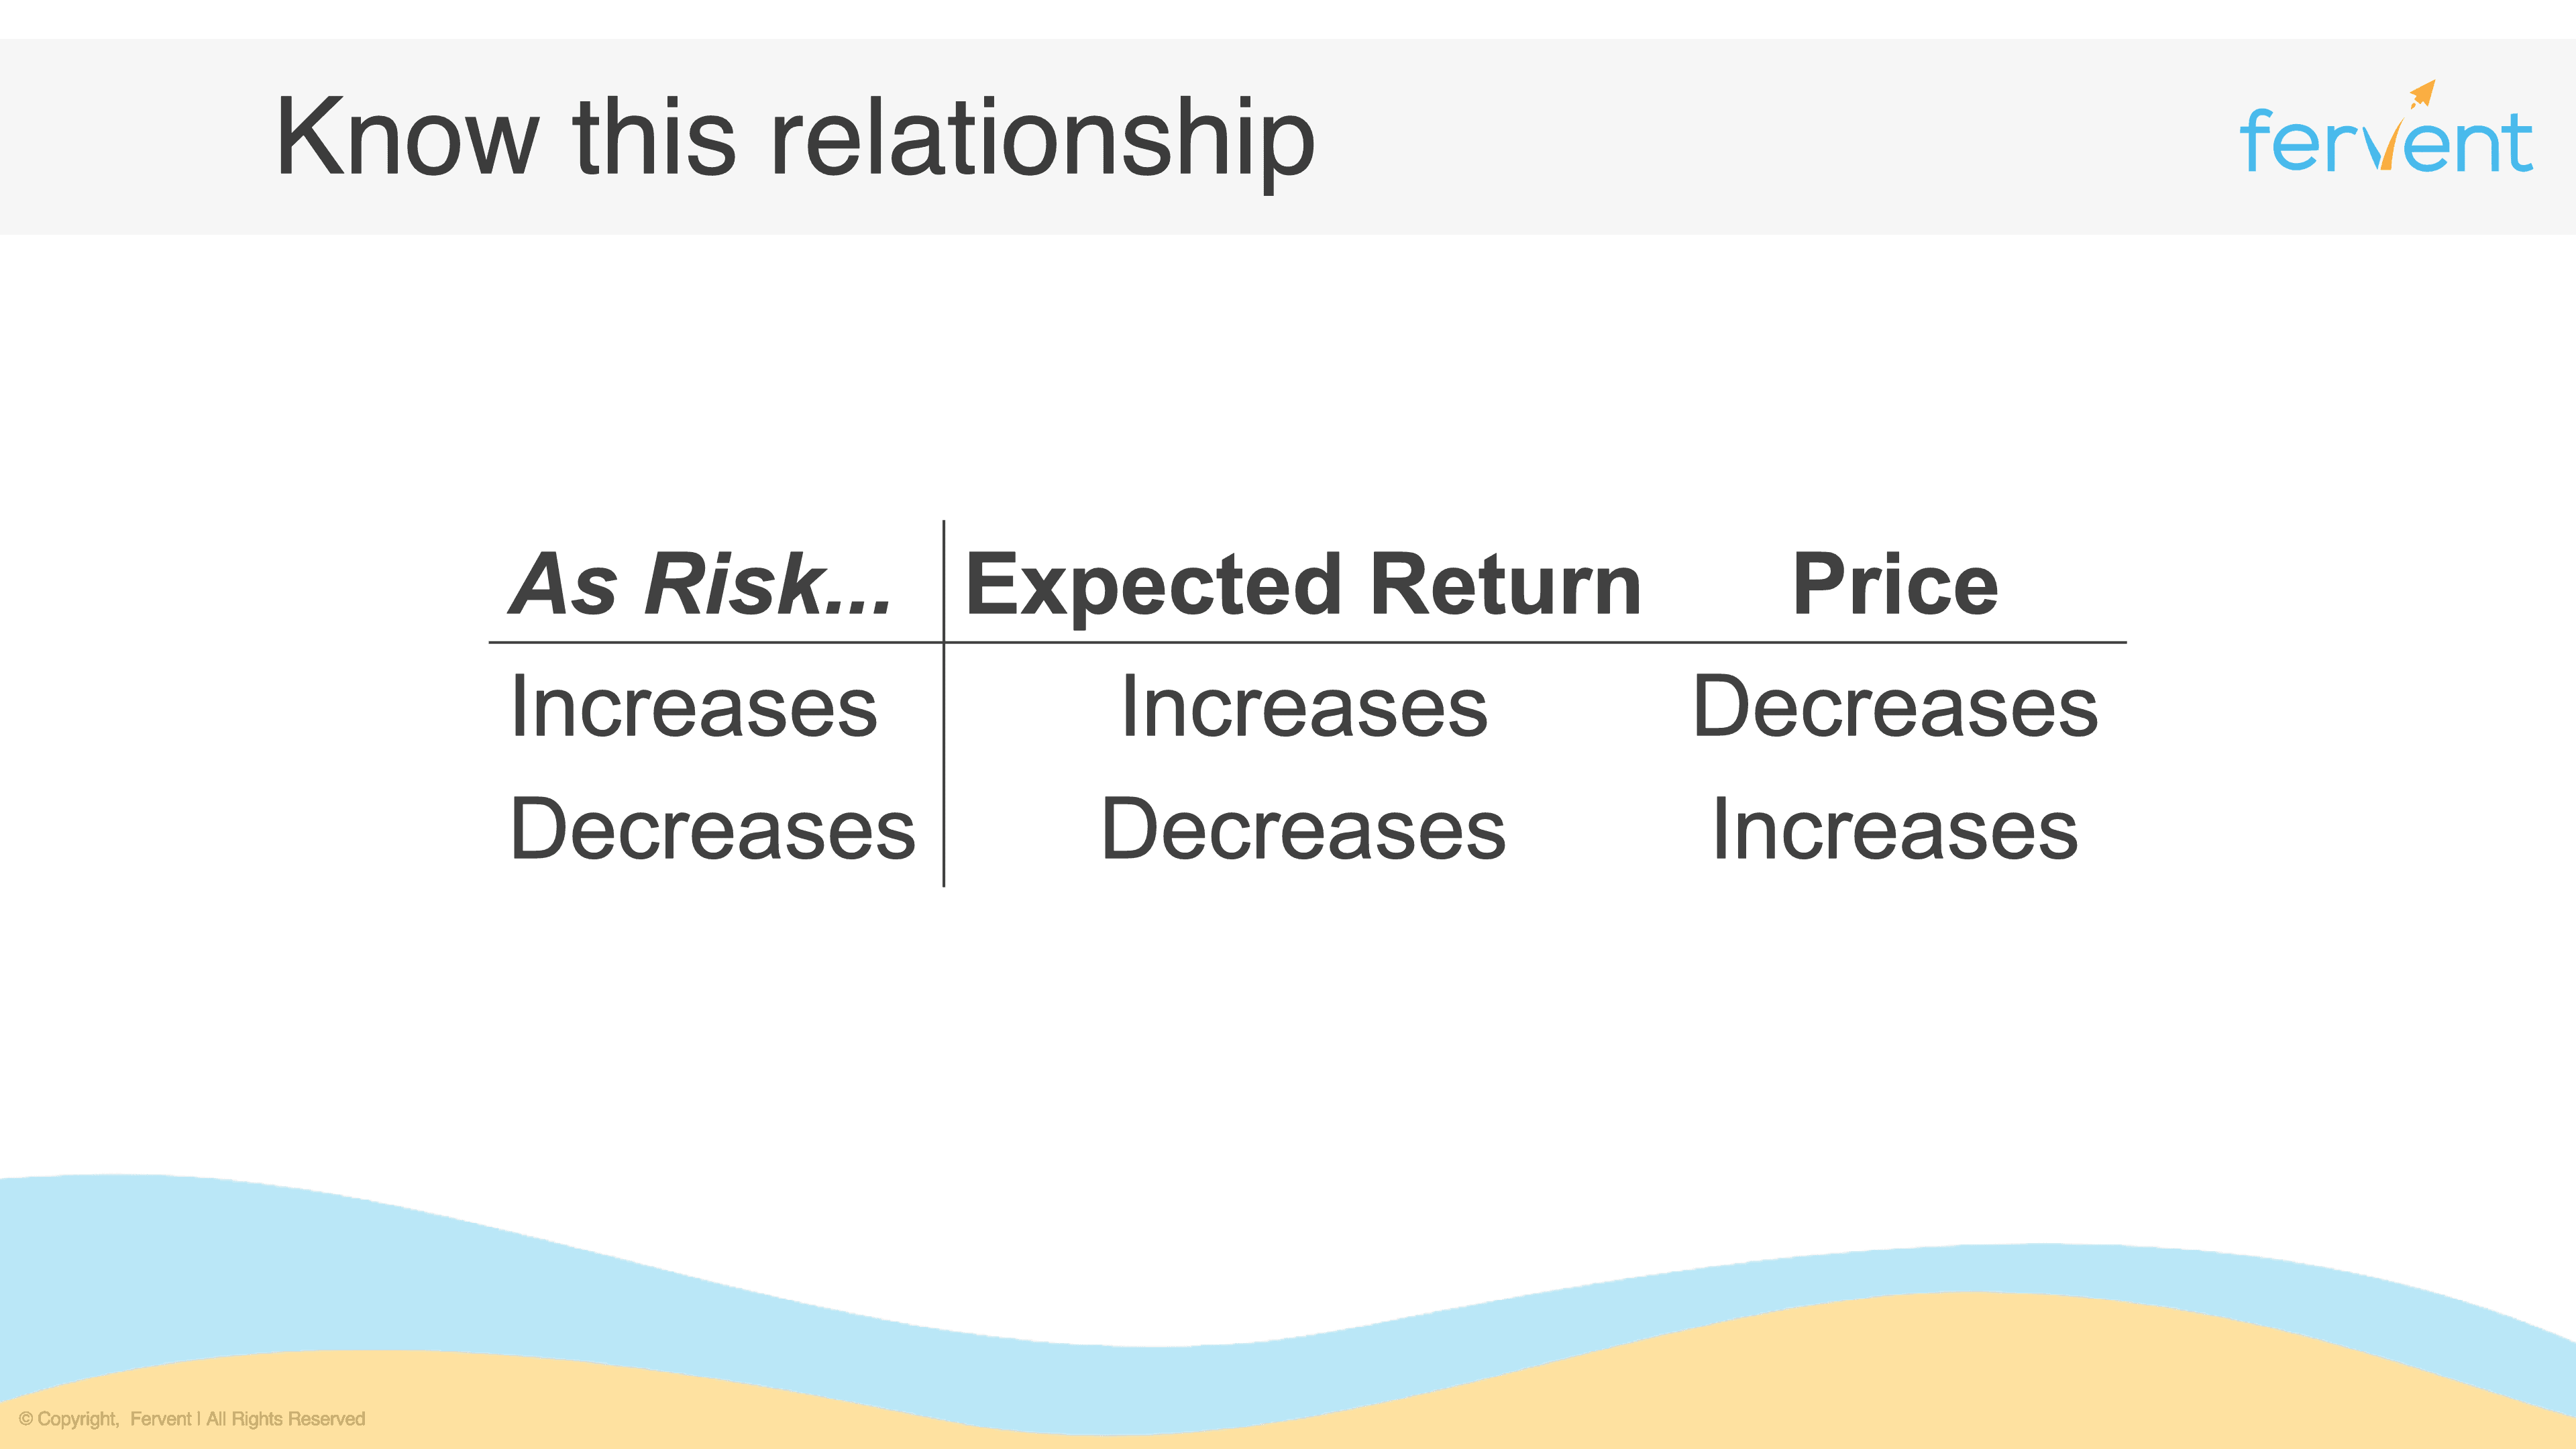 Relationship between price, risk, and return